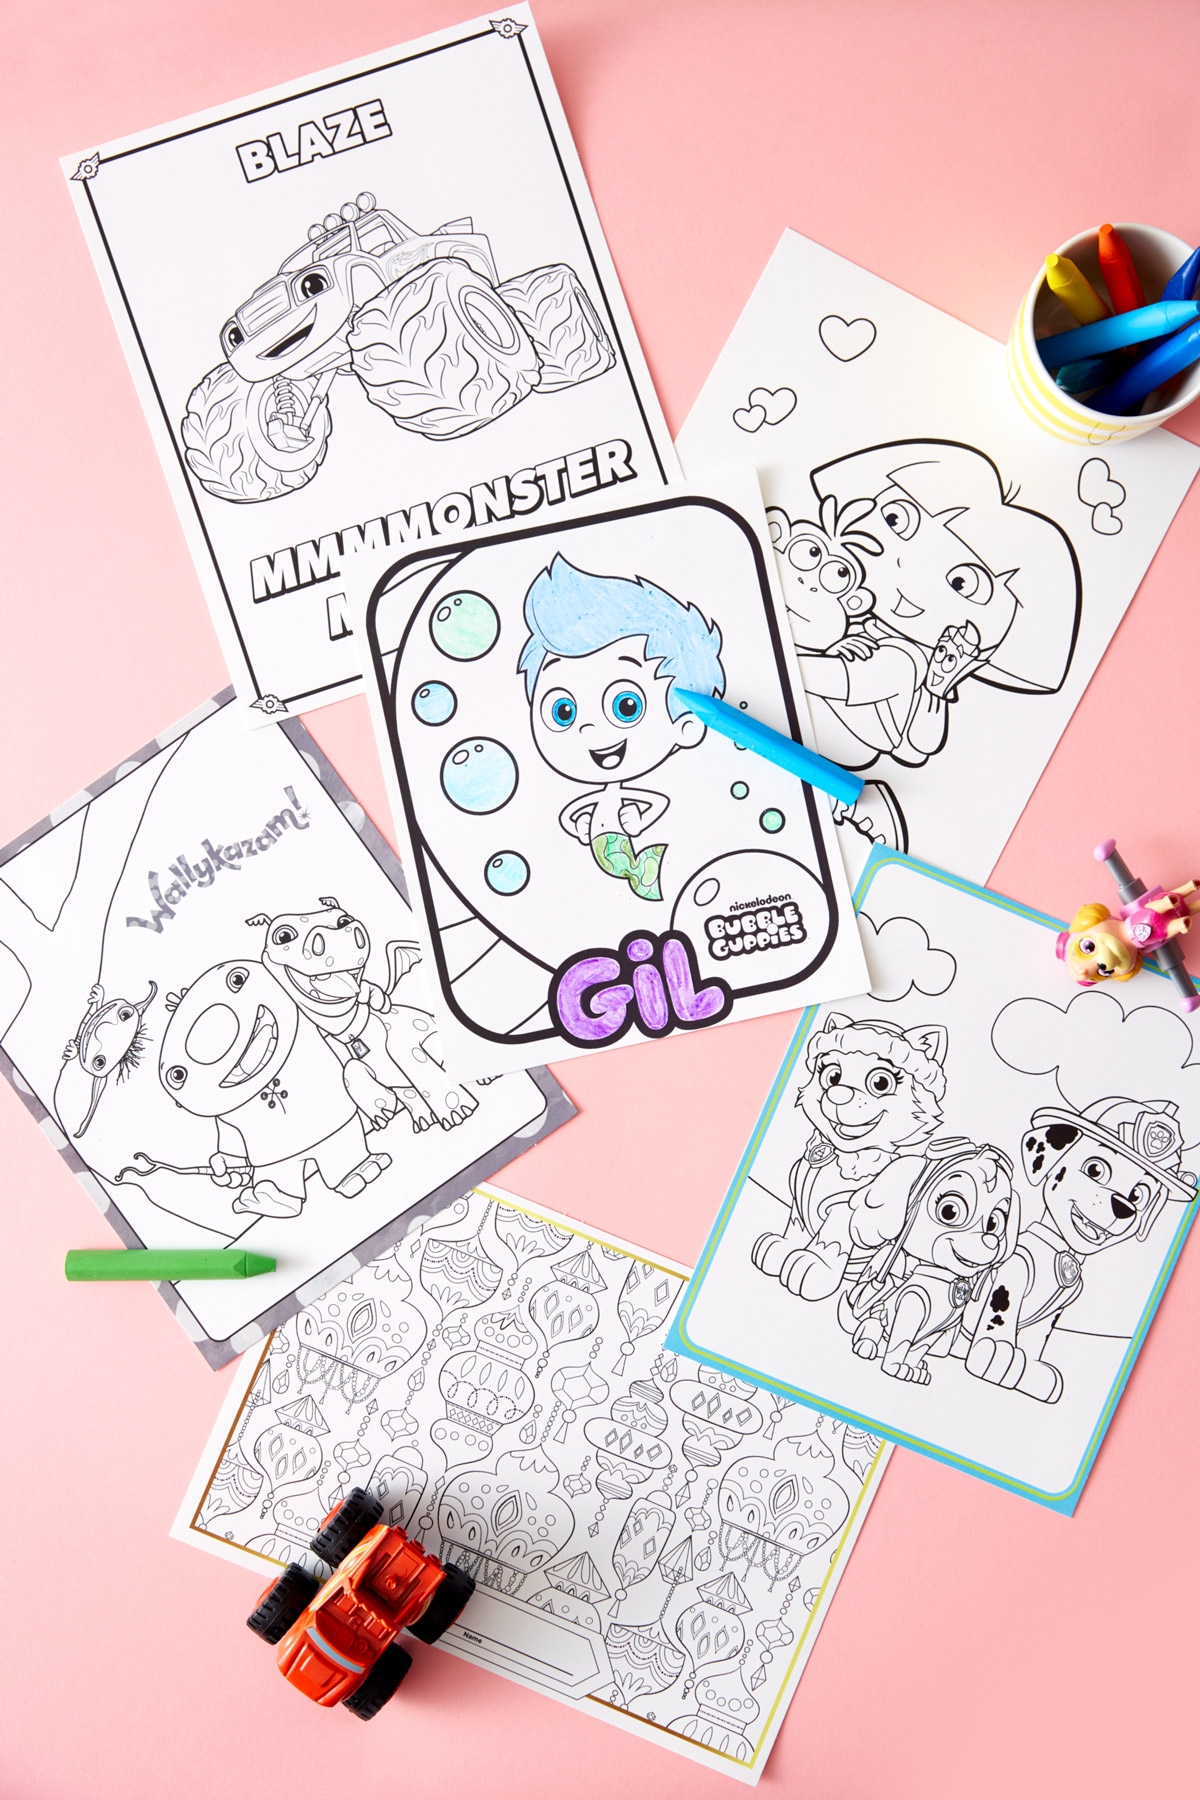 8 nick jr coloring | Coloring Pages | 1800x1200